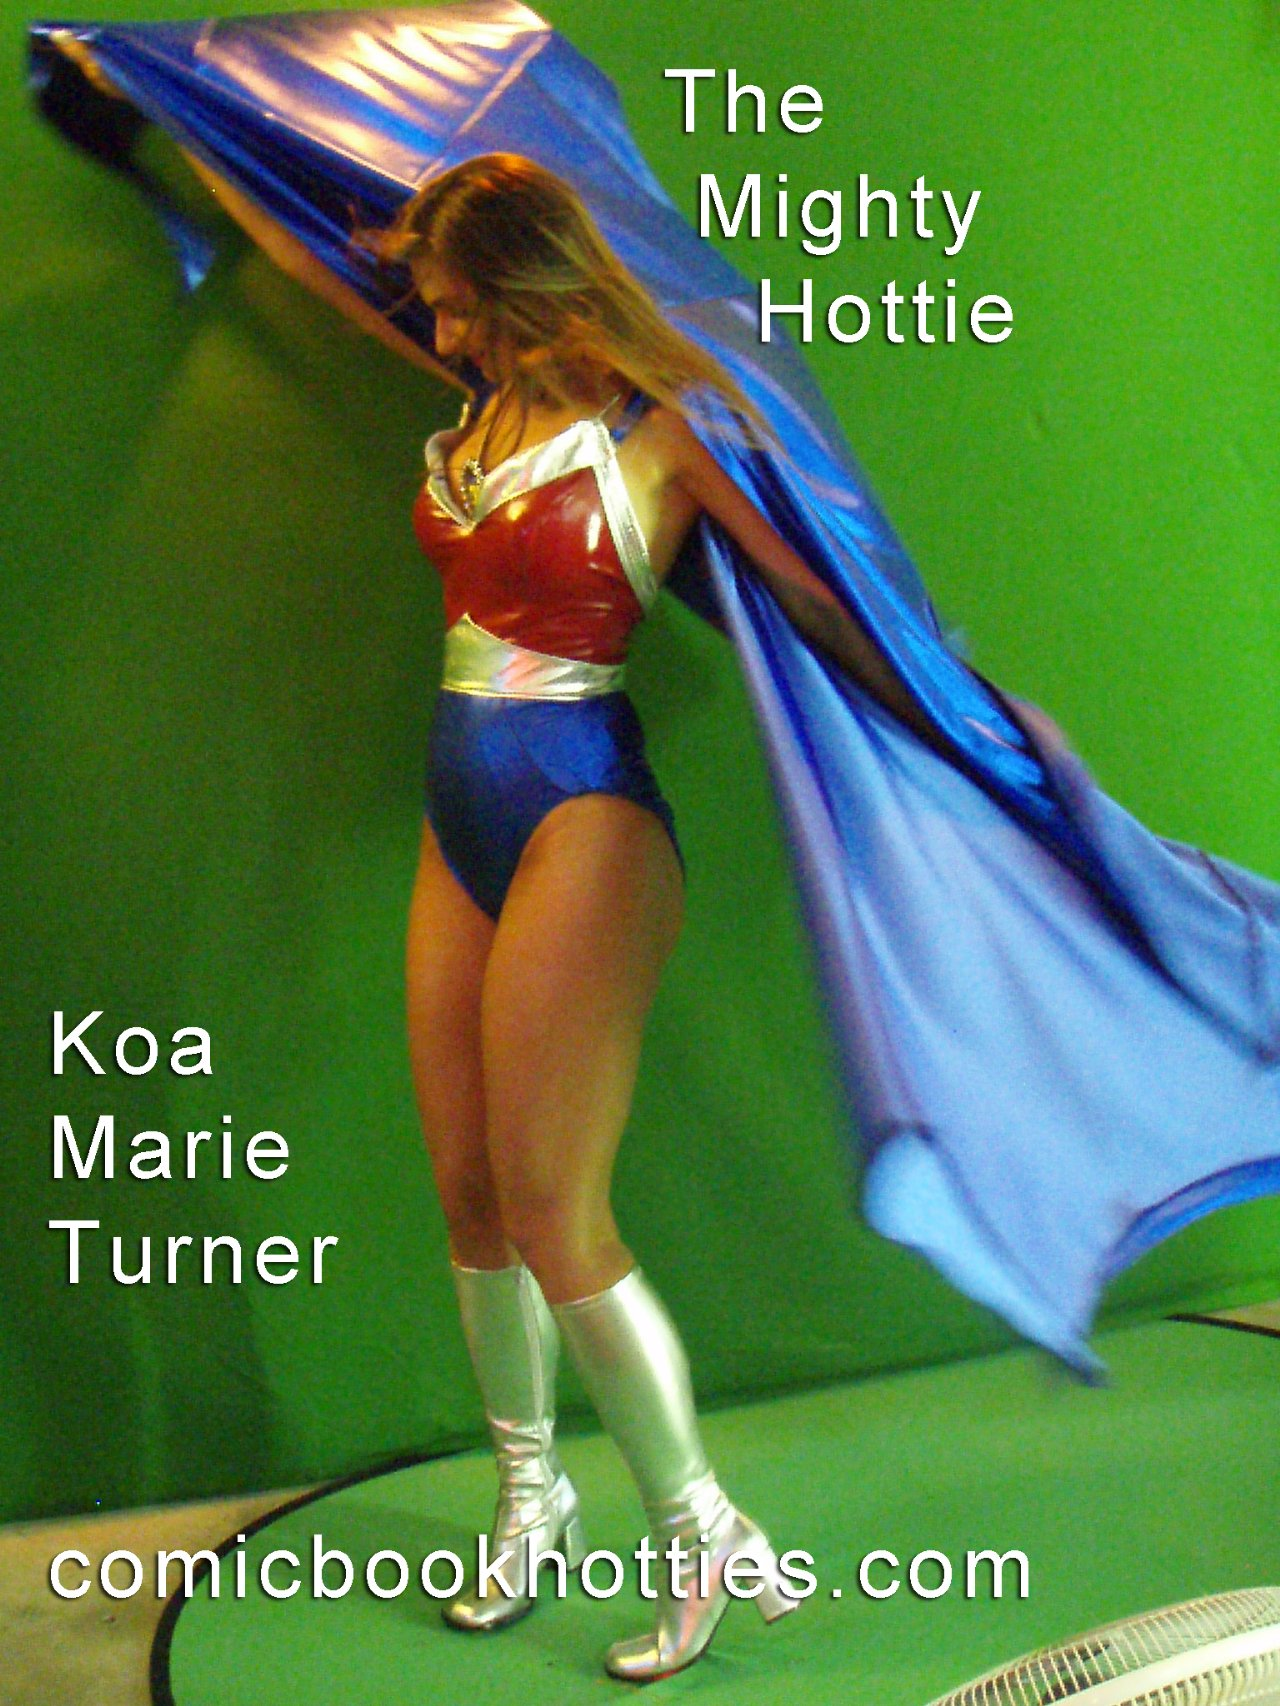 The Mighty Hottie Koa-Marie Turner